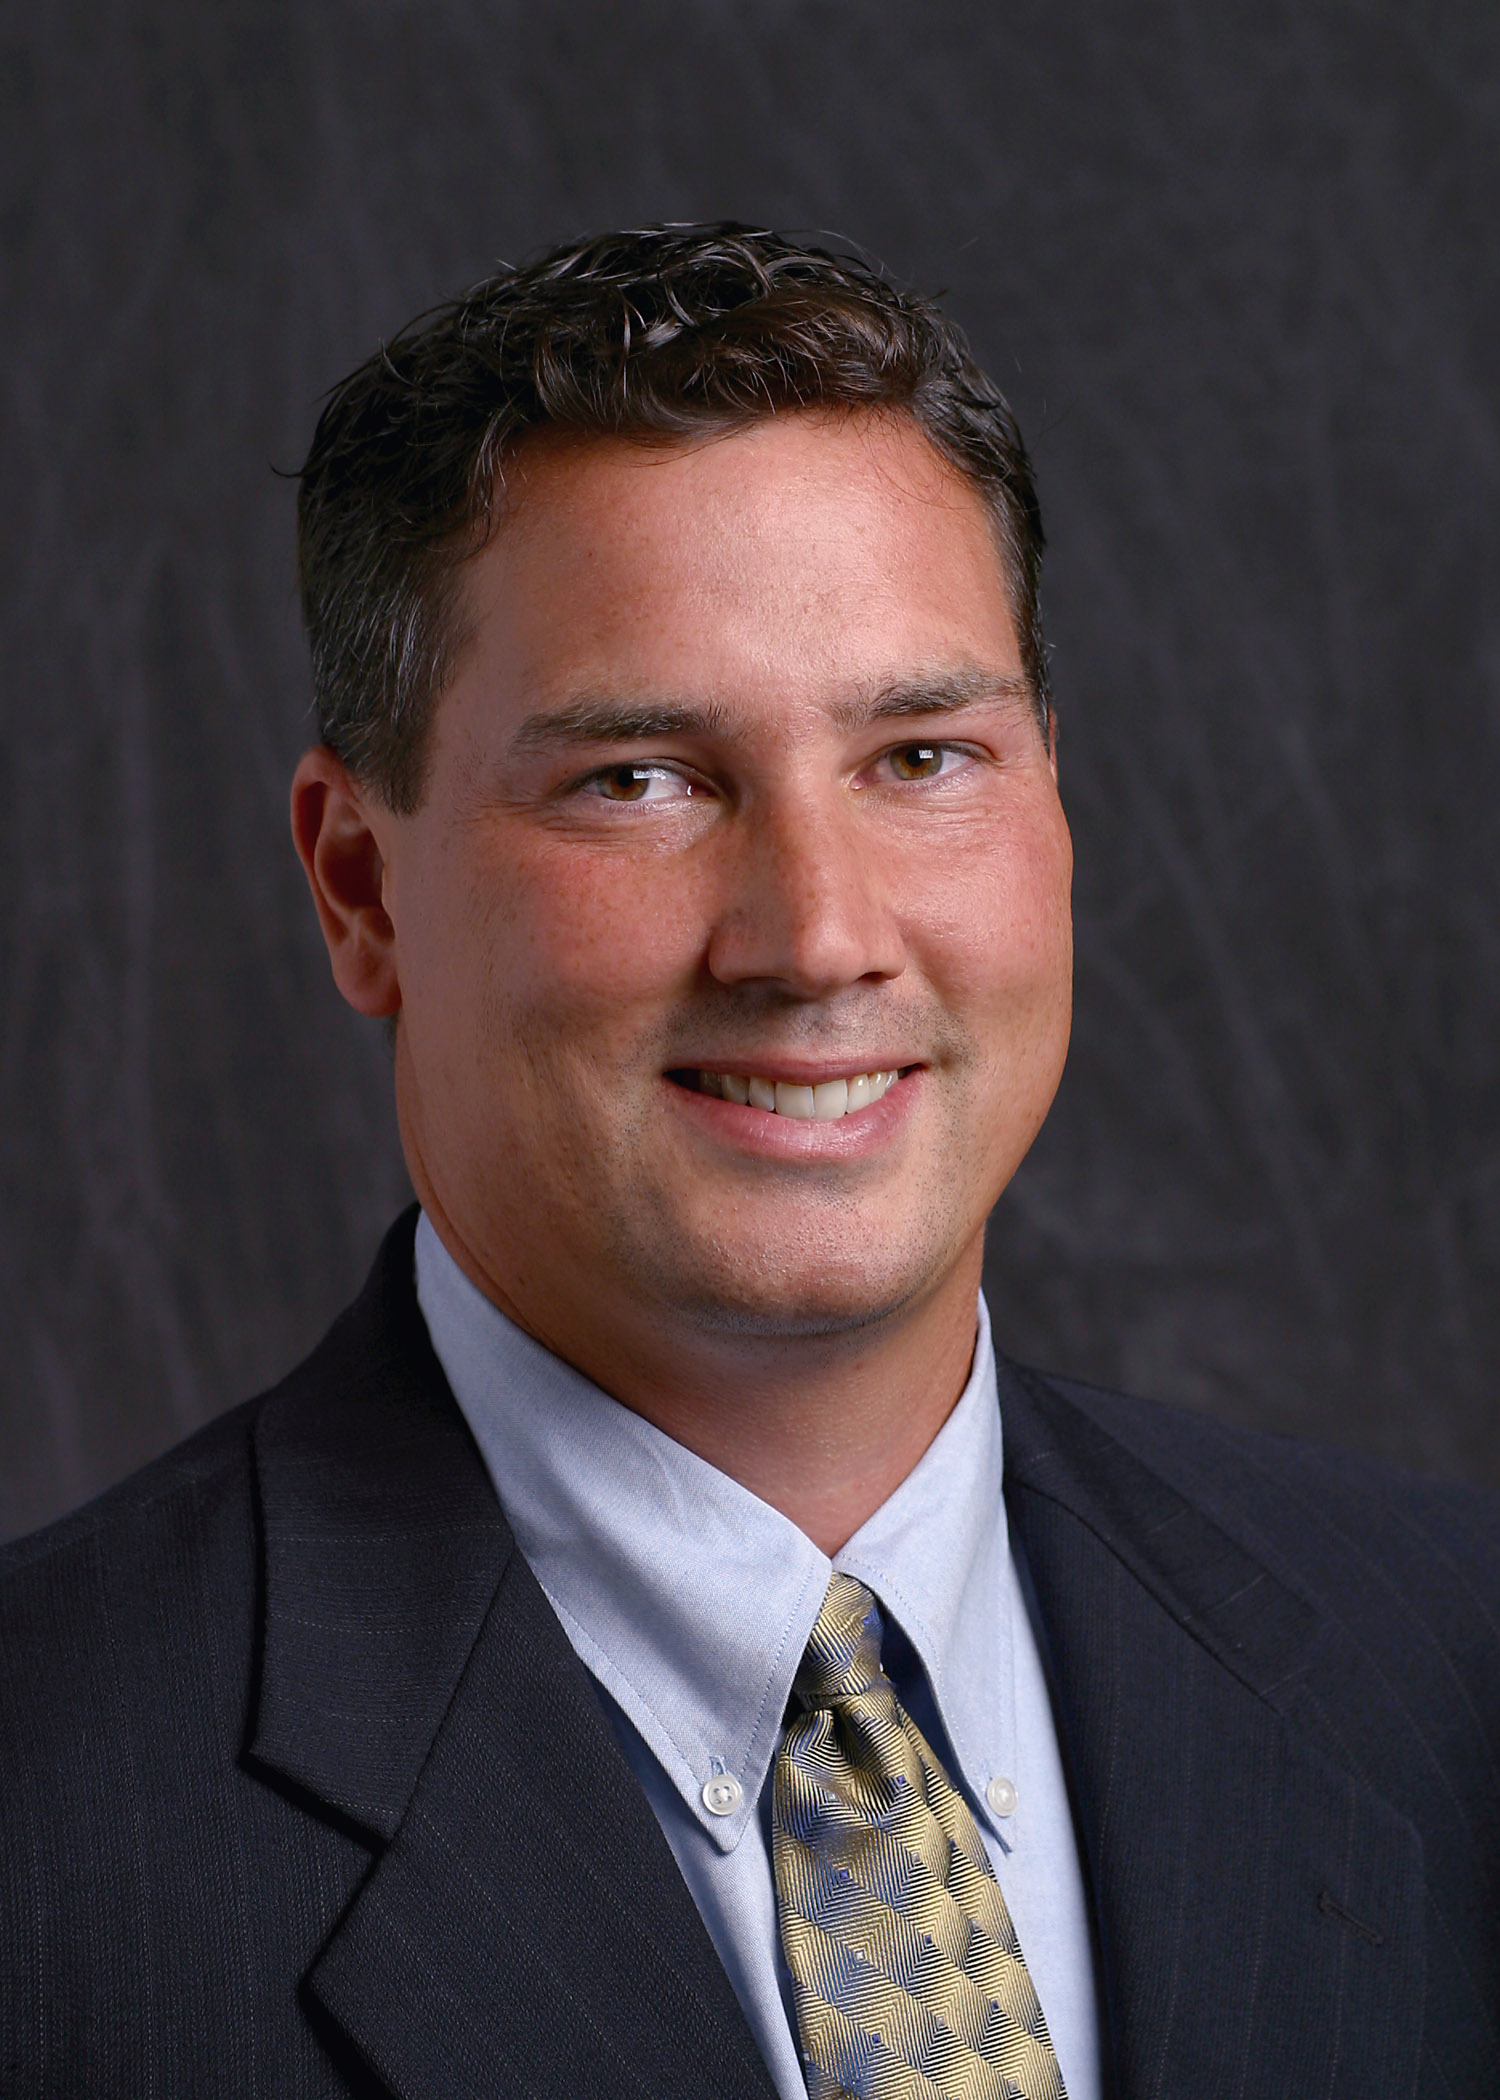 jason p  soileau named assistant vice president  office of